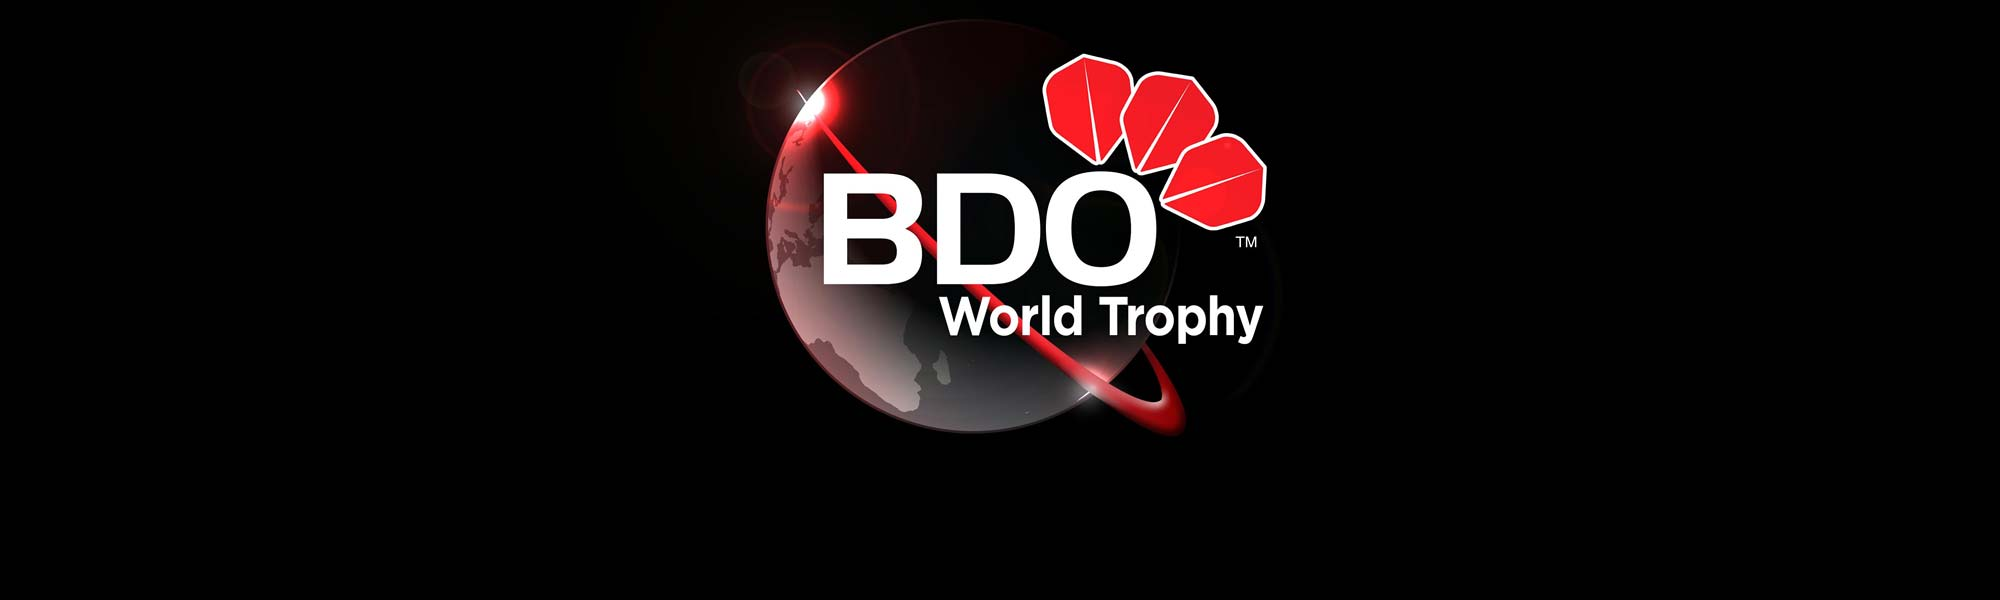 BDO World Trophy Logo